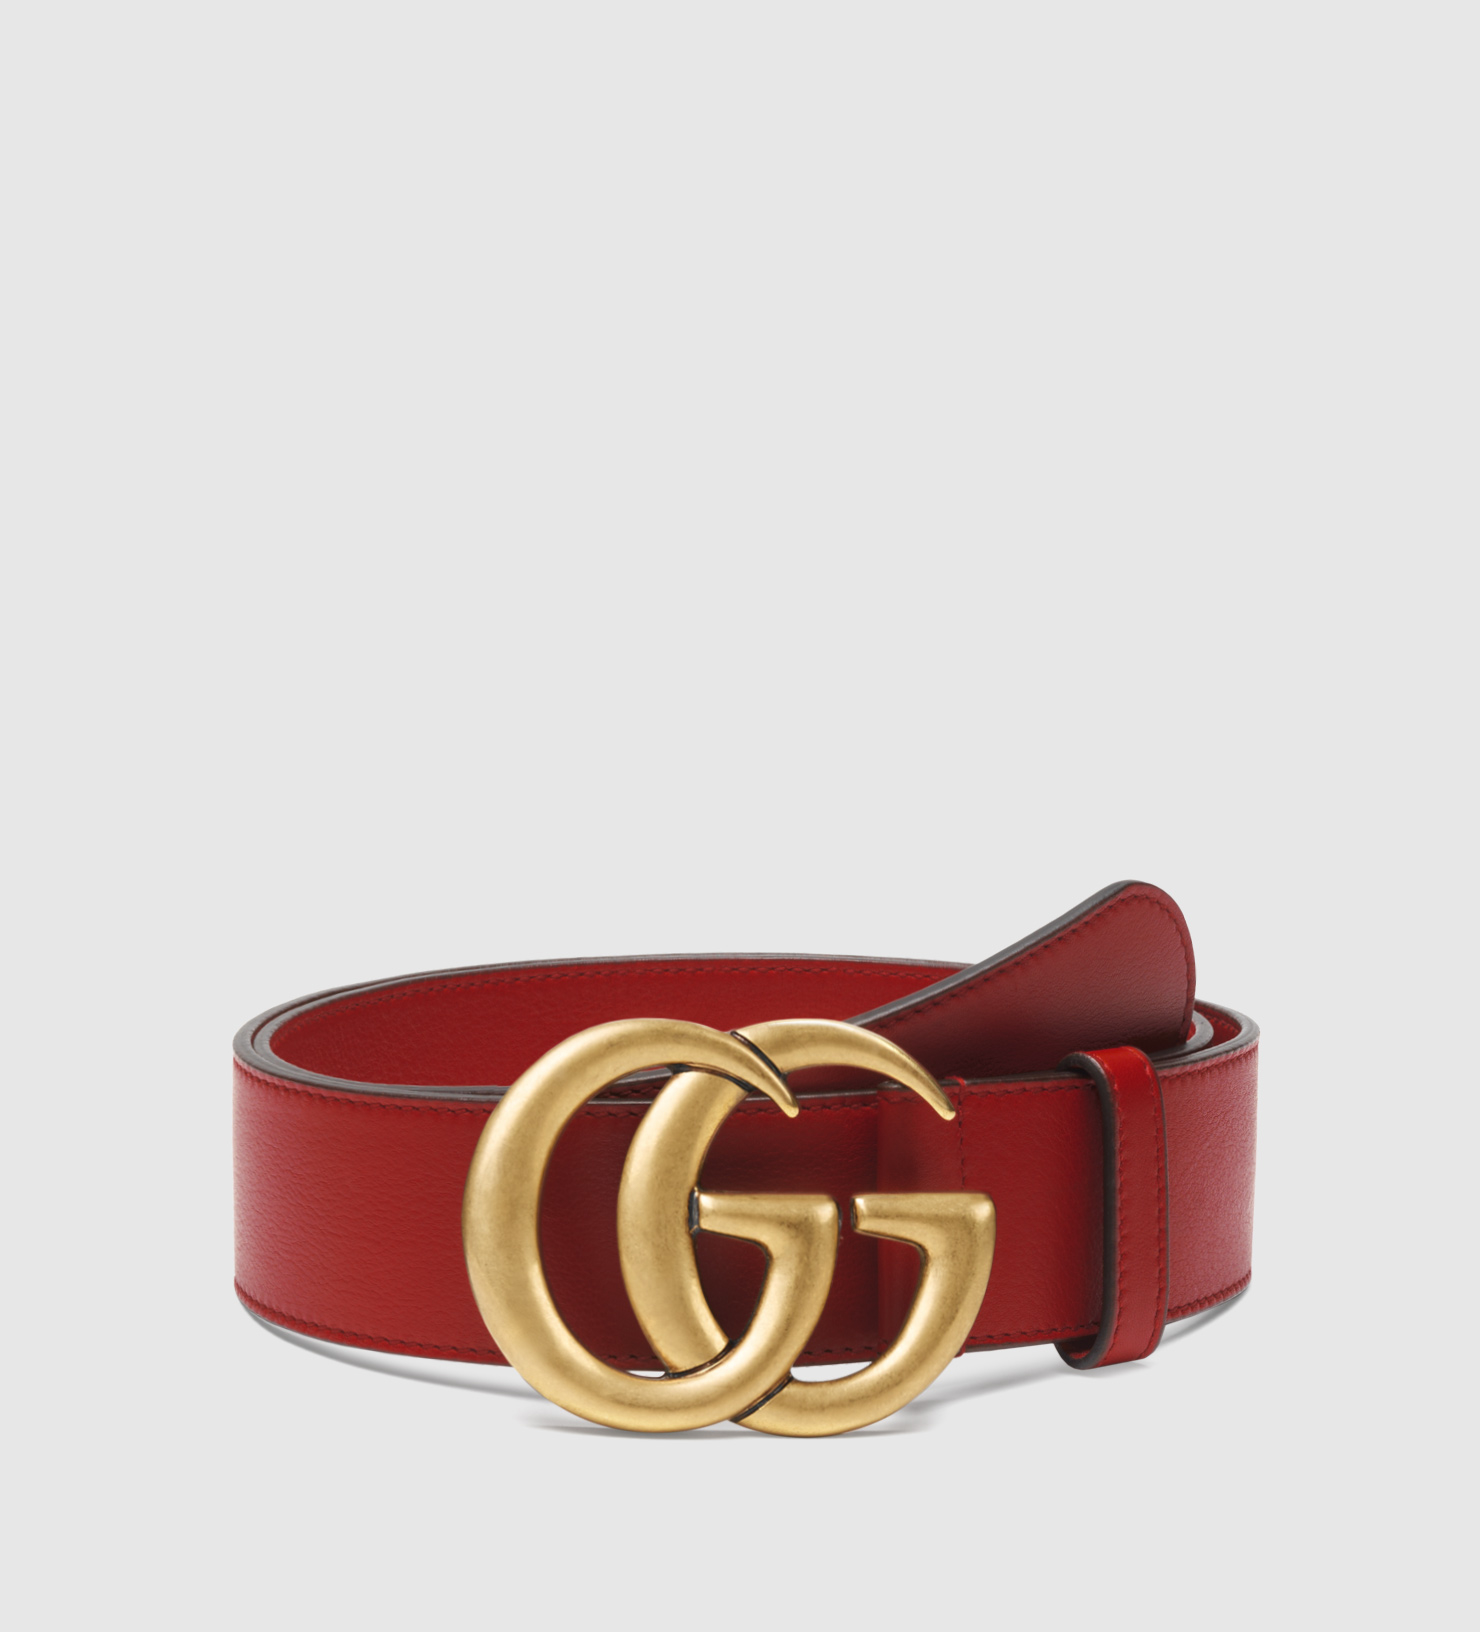 5b315bacf173 Lyst - Gucci Leather Belt With Double G Buckle in Red